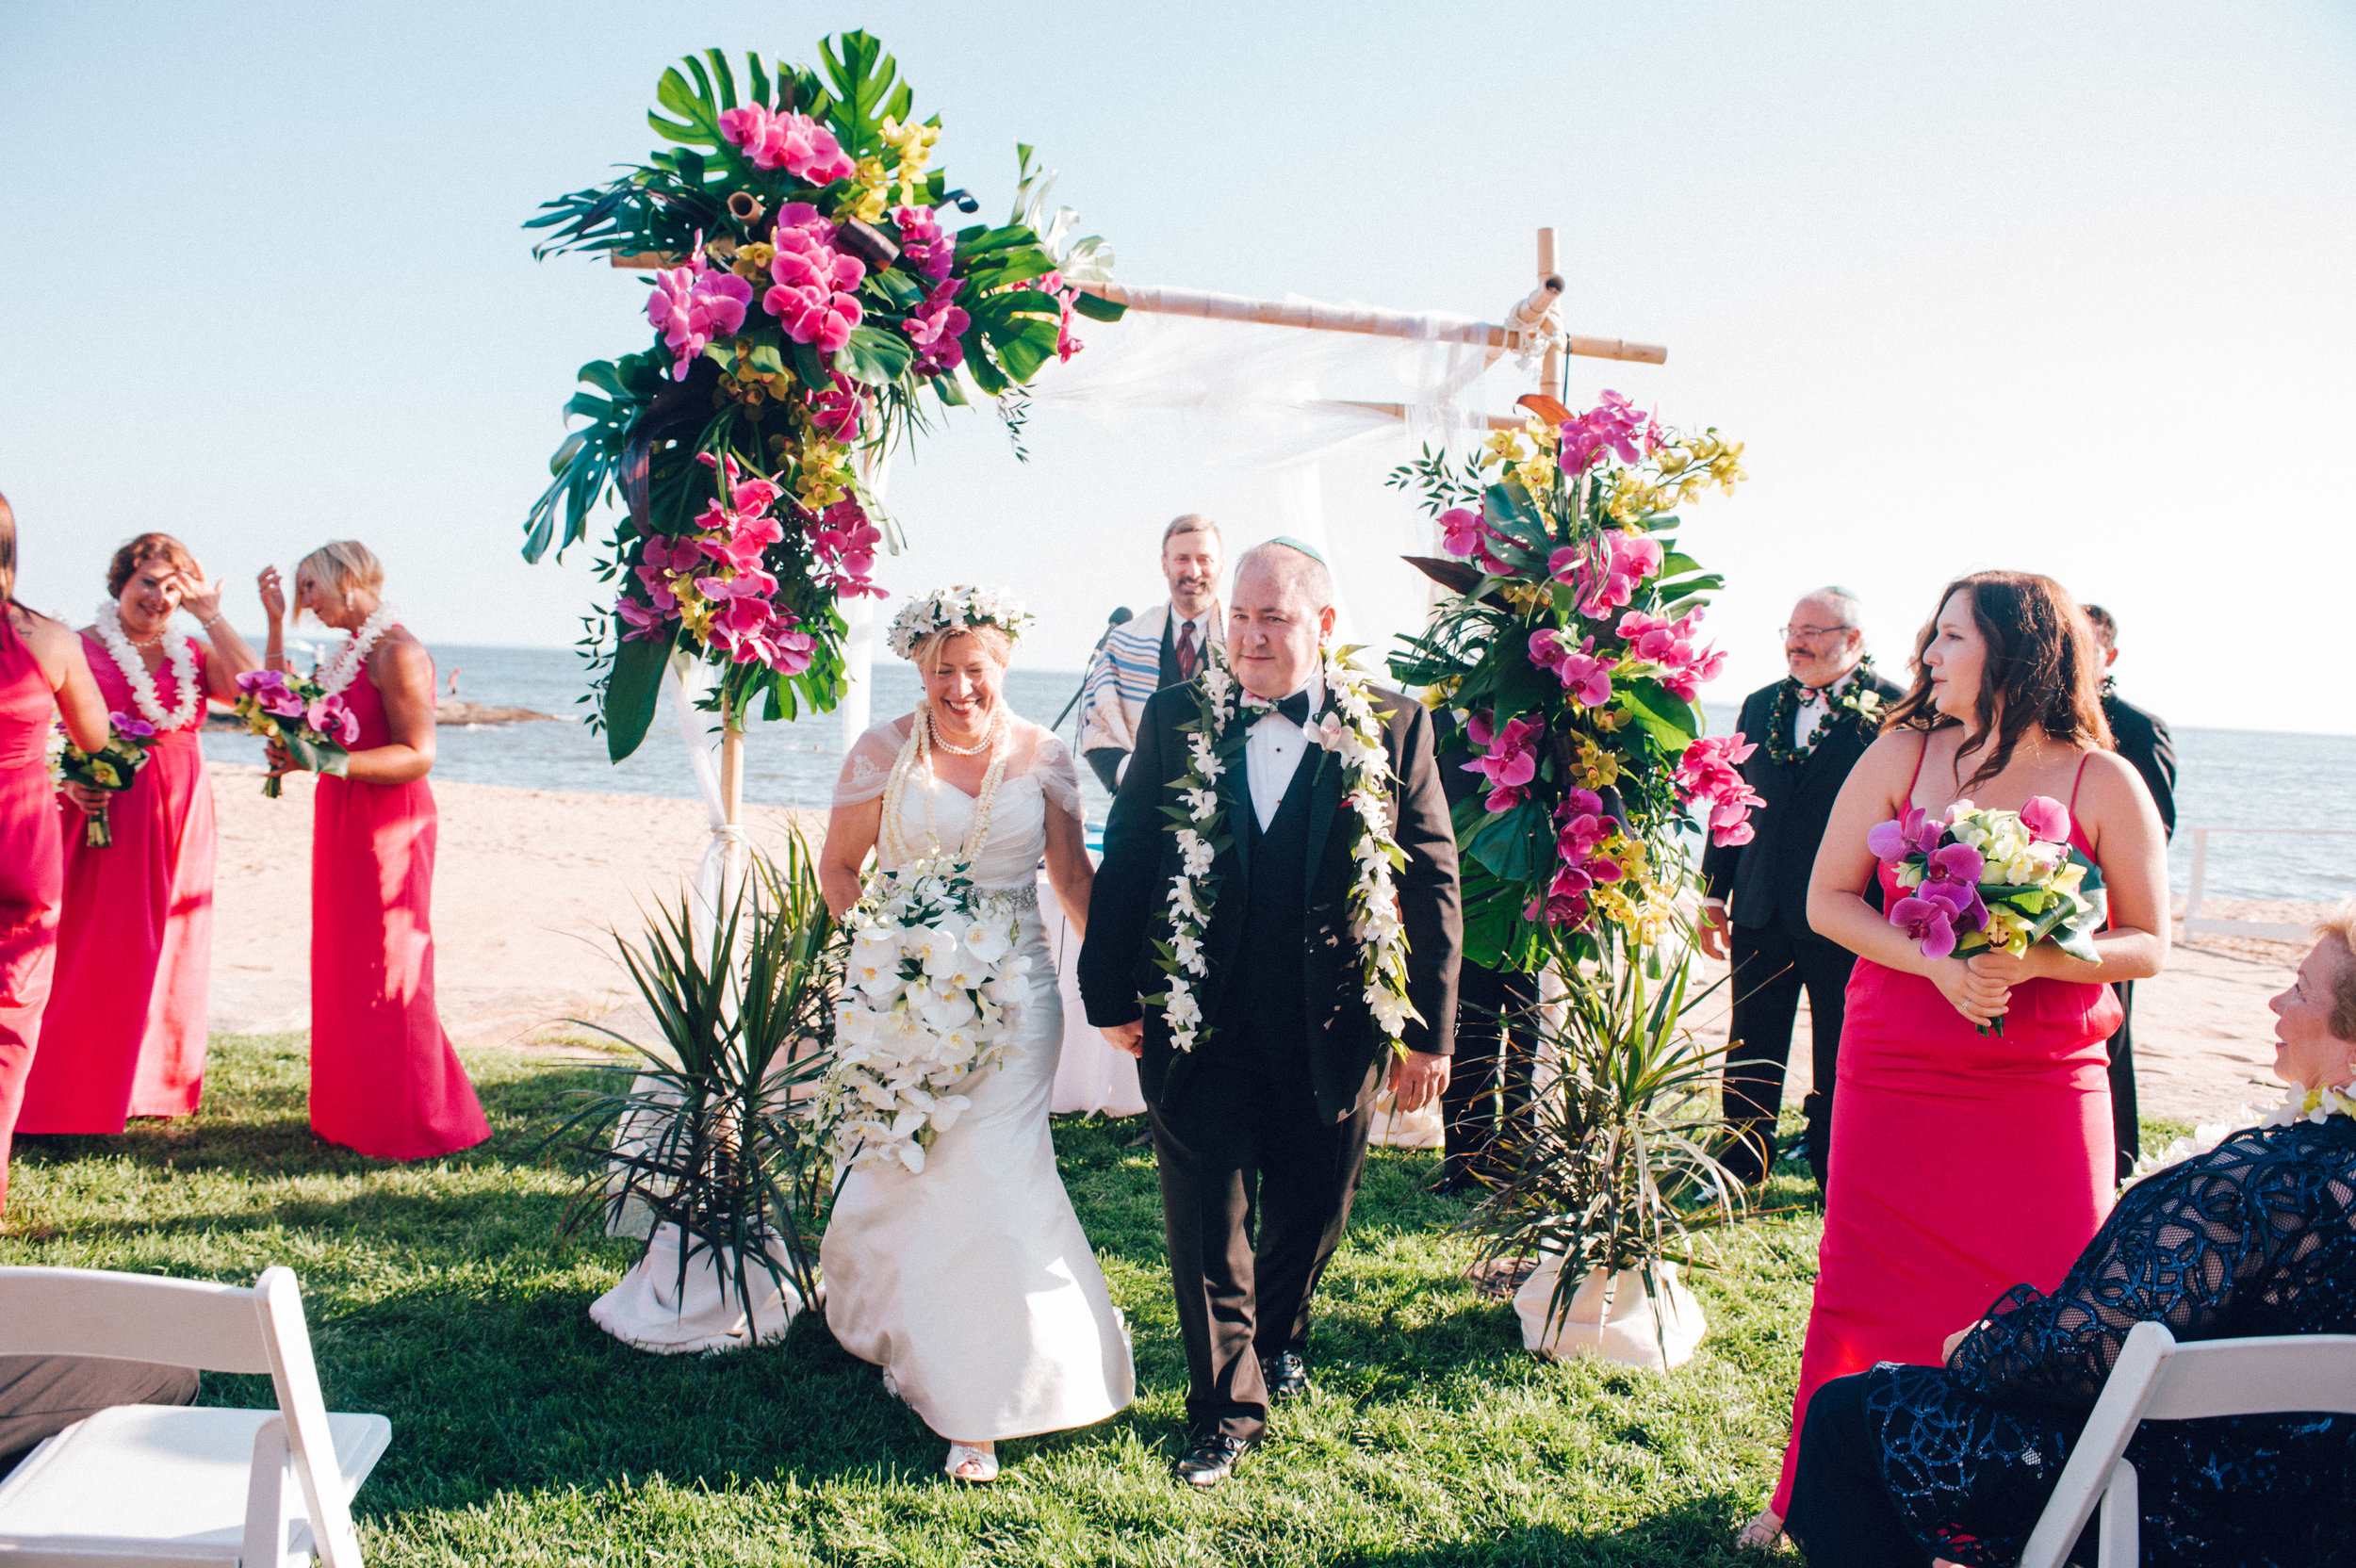 Bride and Groom getting married outdoors with beauitful floral arrangements surrounding them